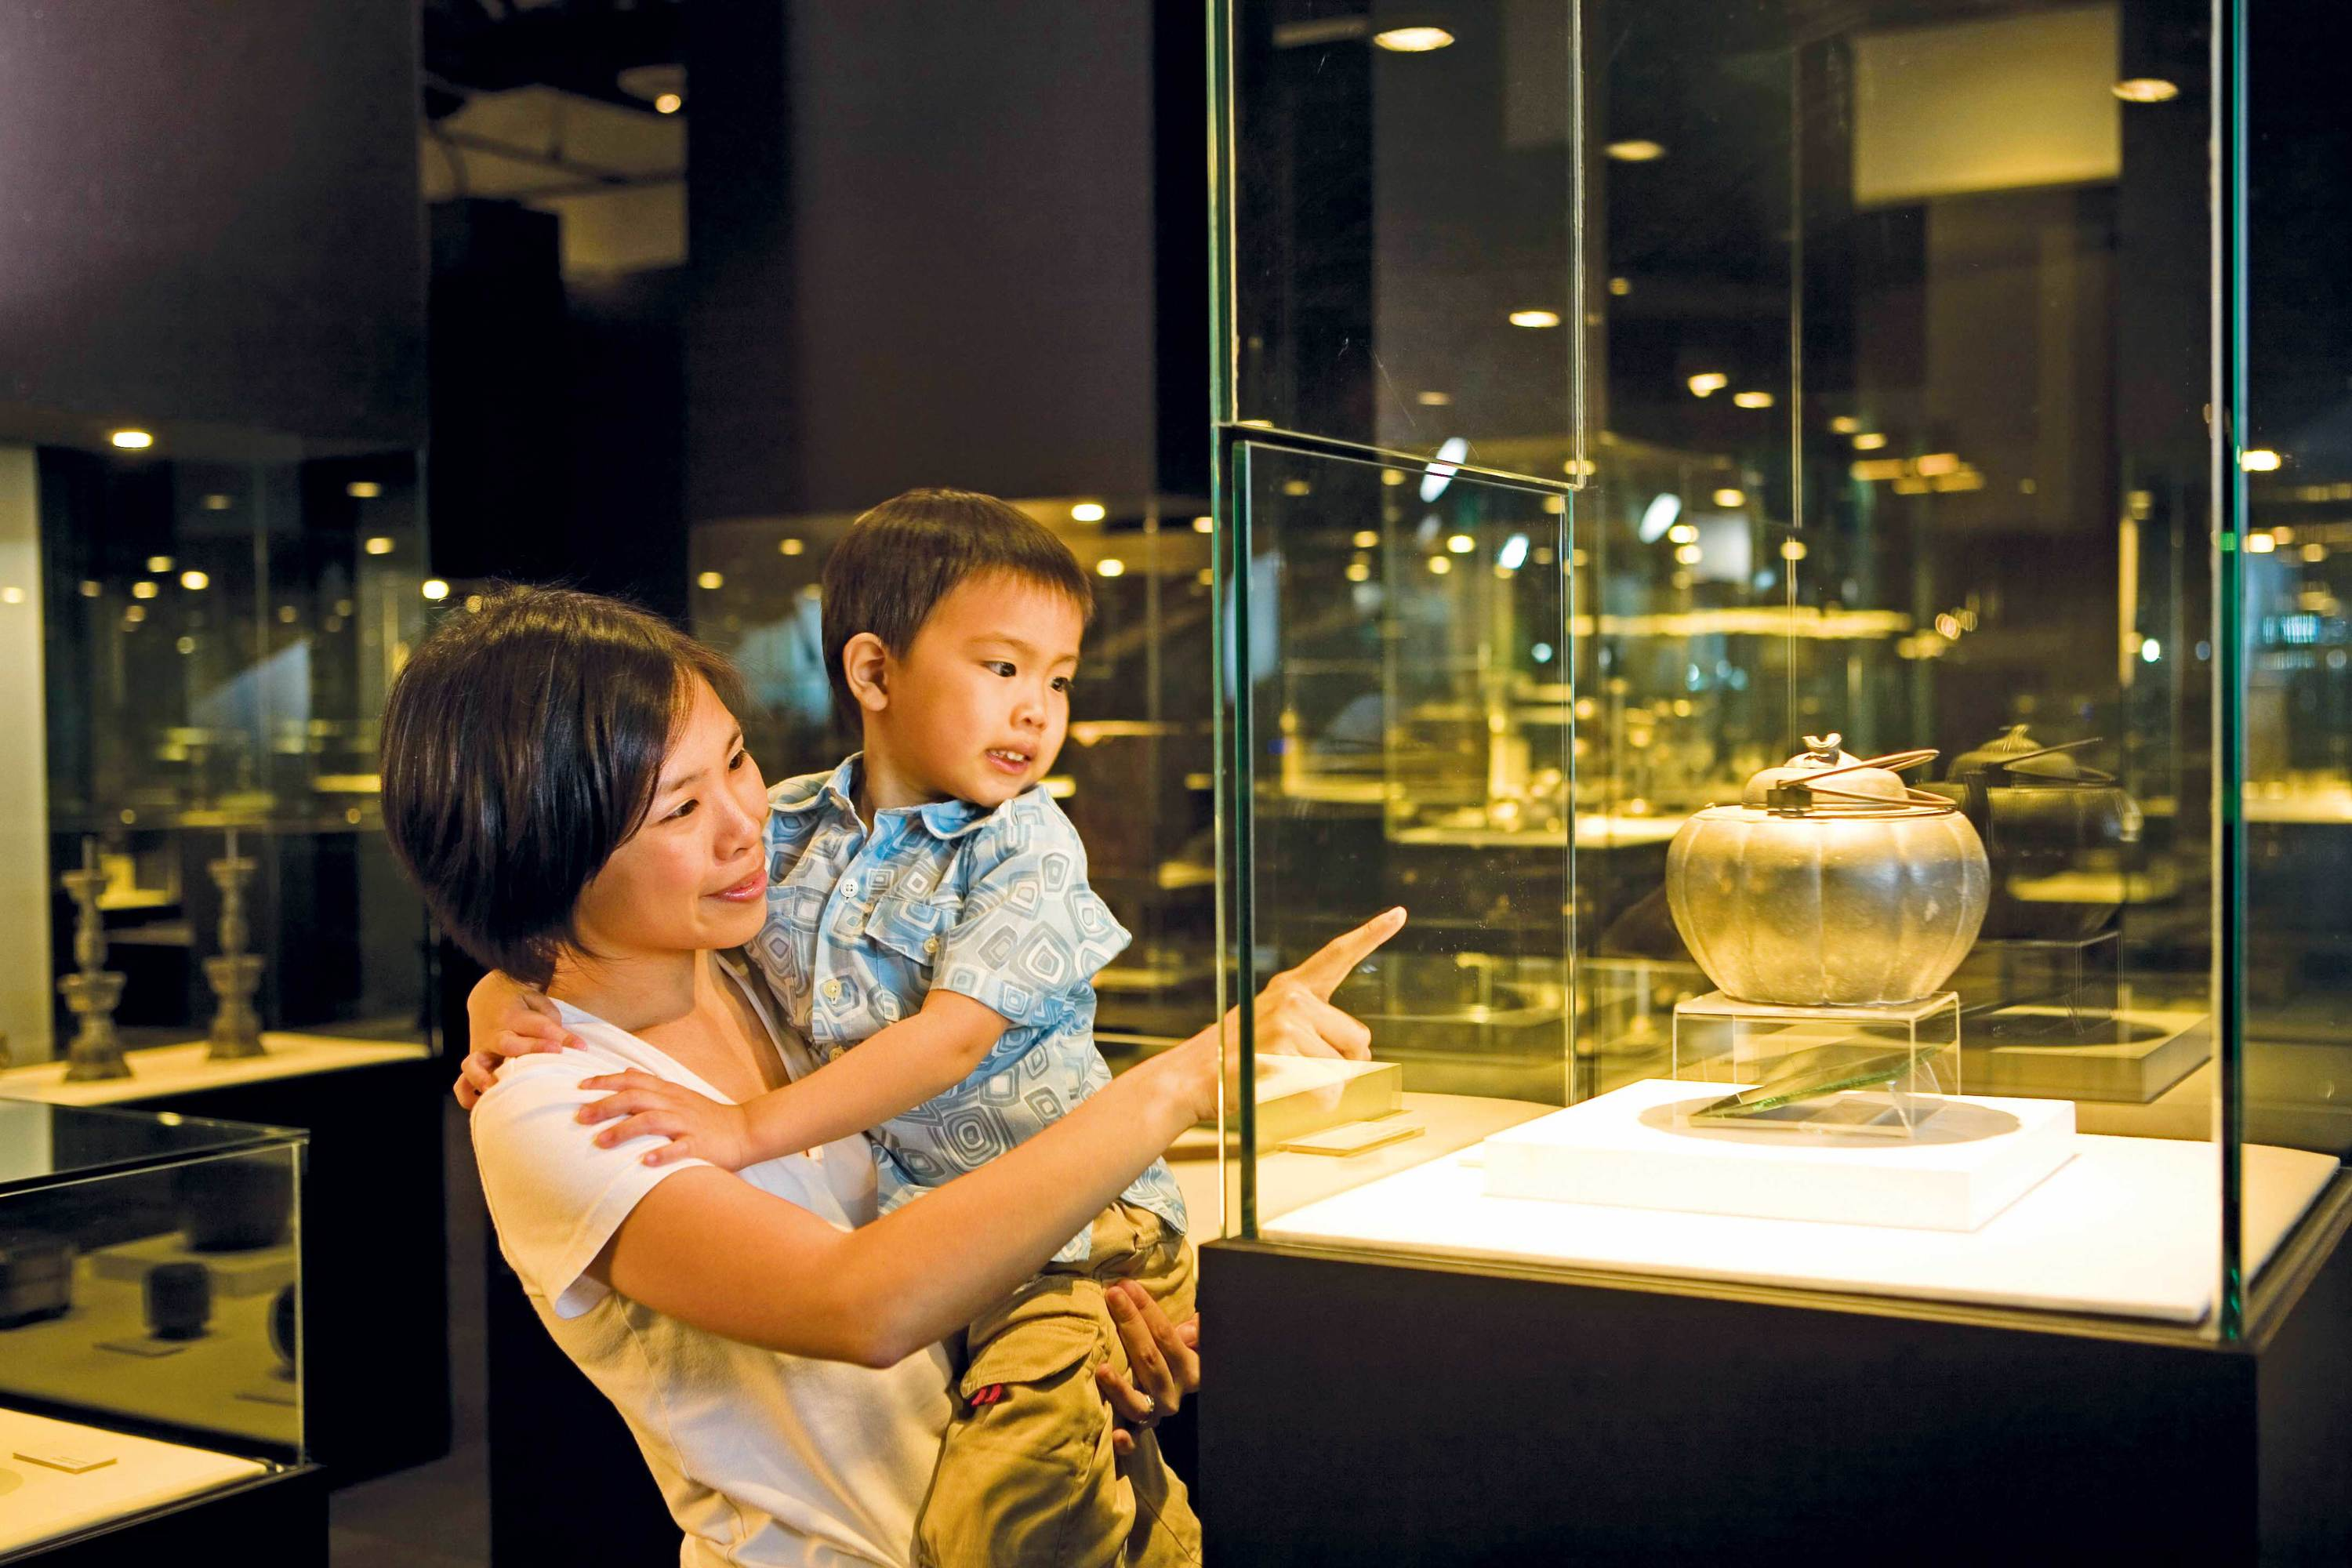 Tour of Royal Selangor Visitor Centre